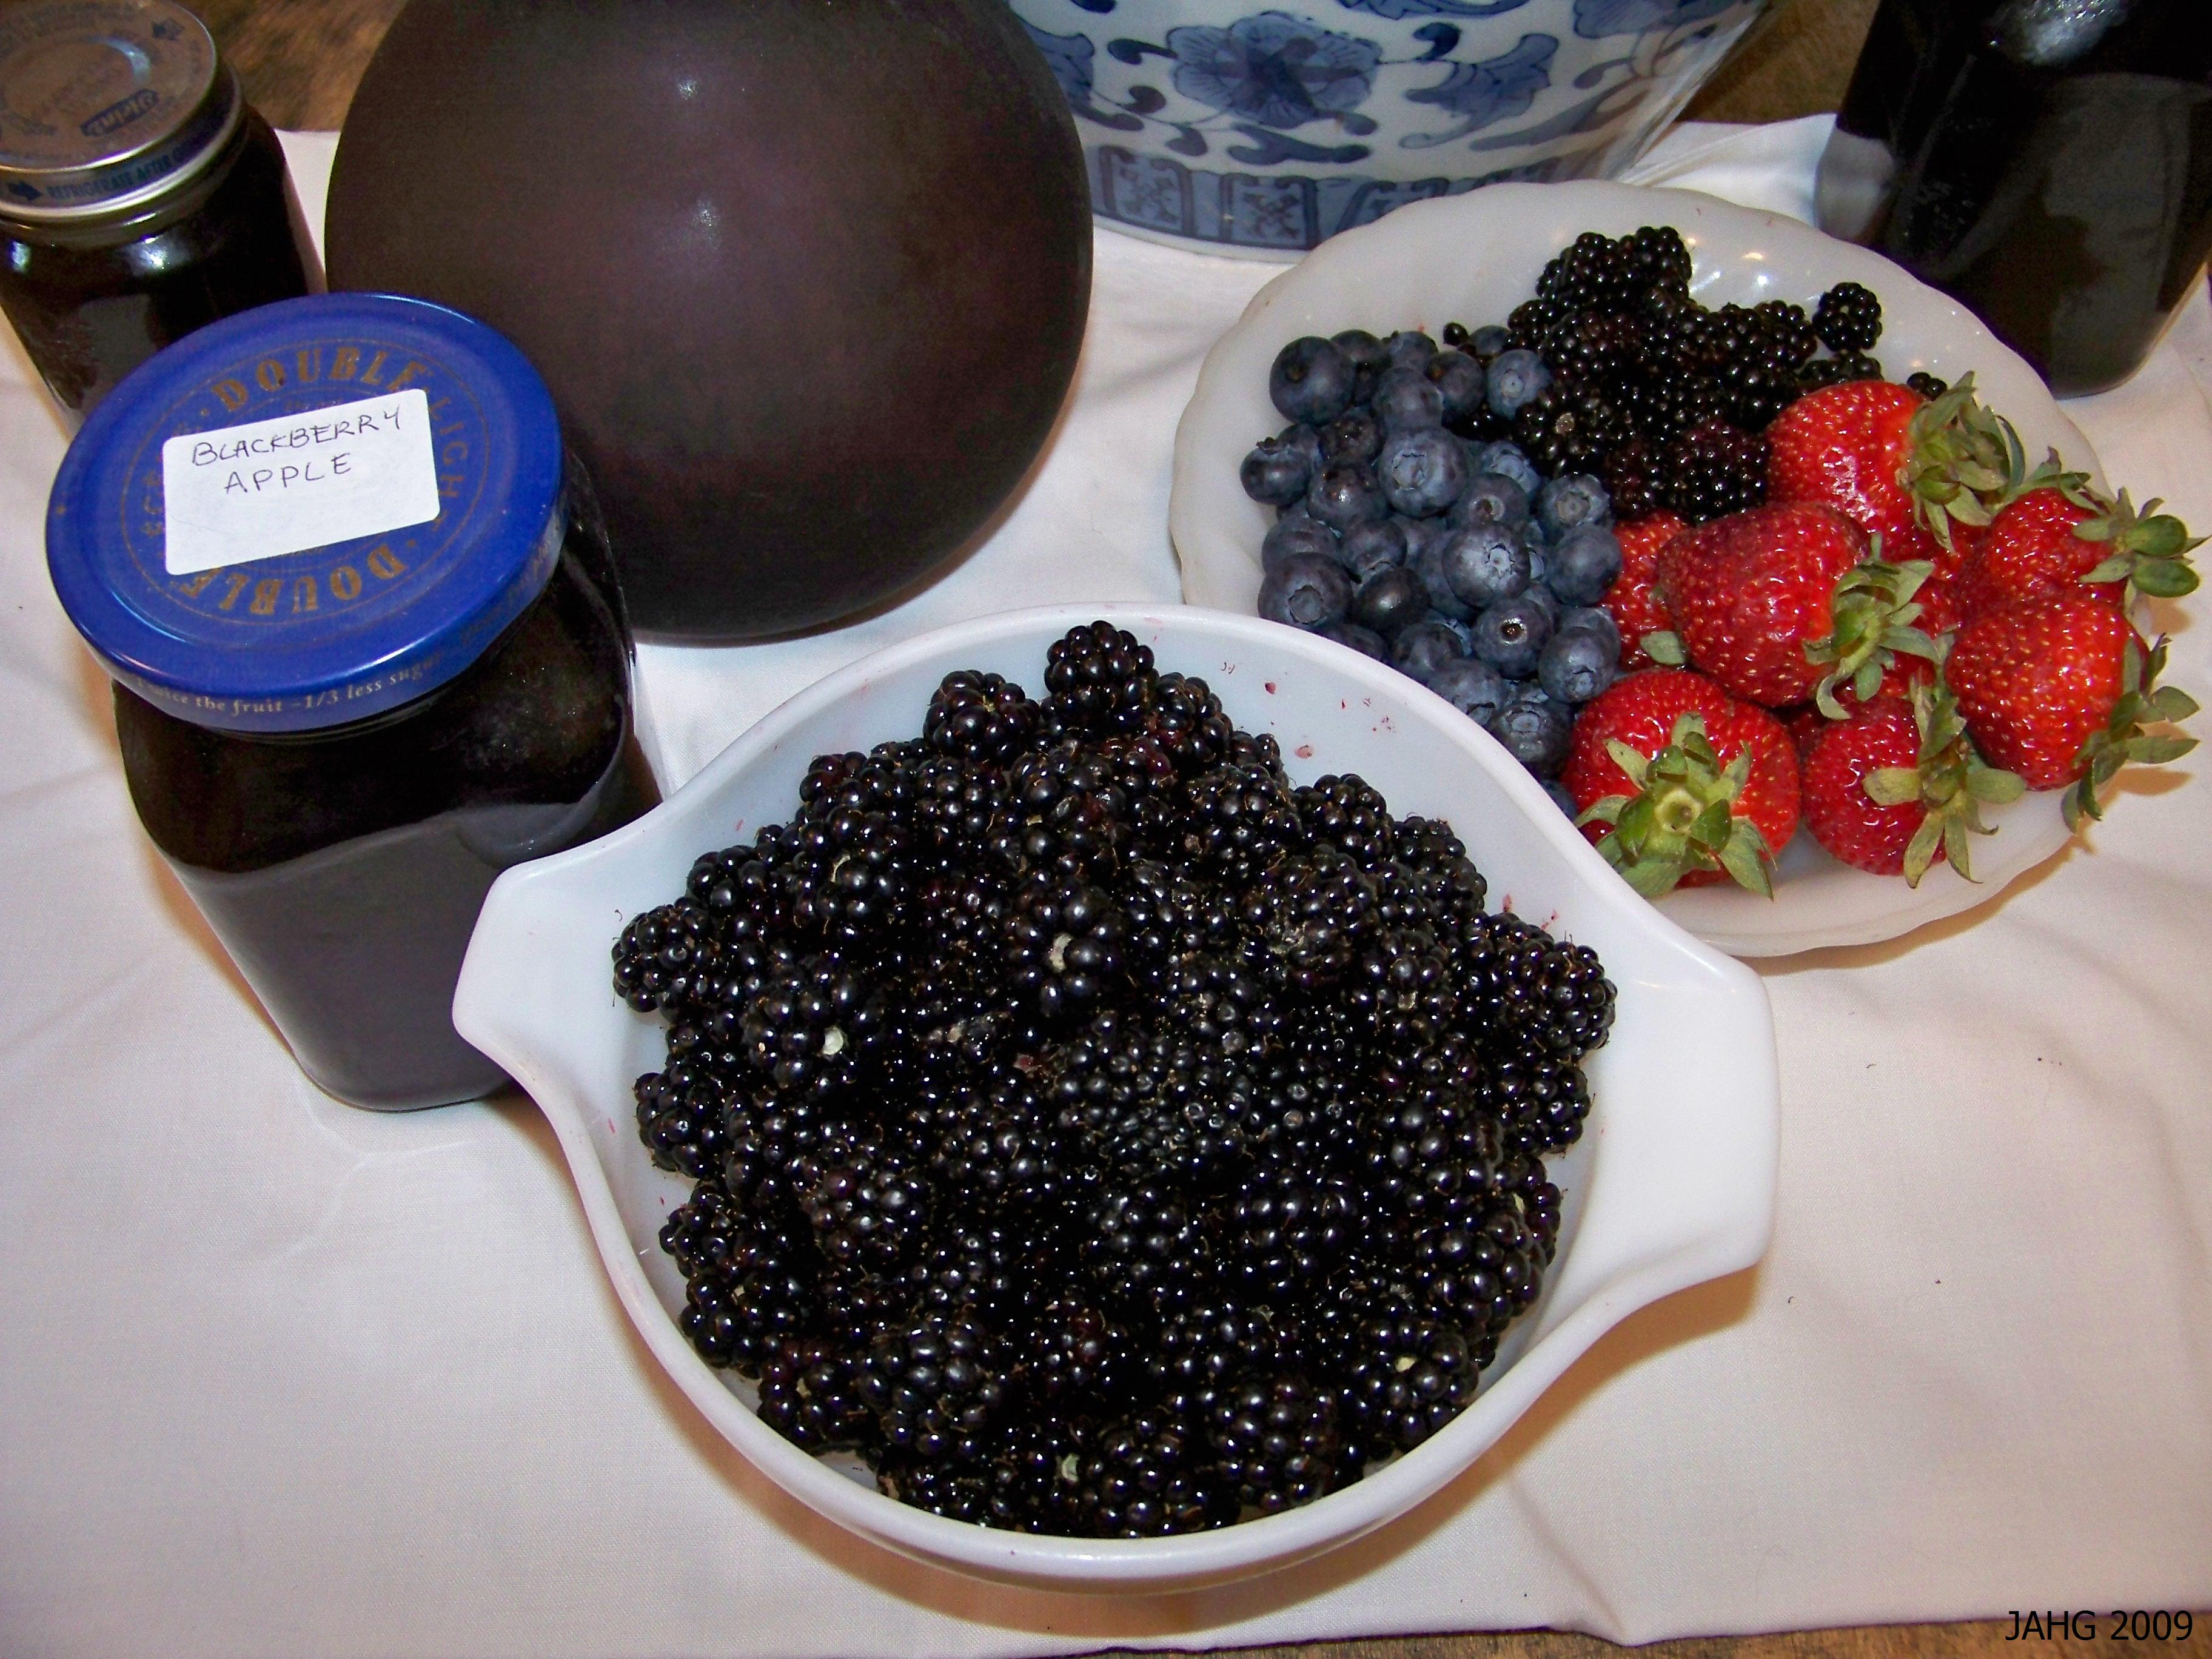 A few minutes of picking Armenian Blackberries will produce enough for a delicious dessert.